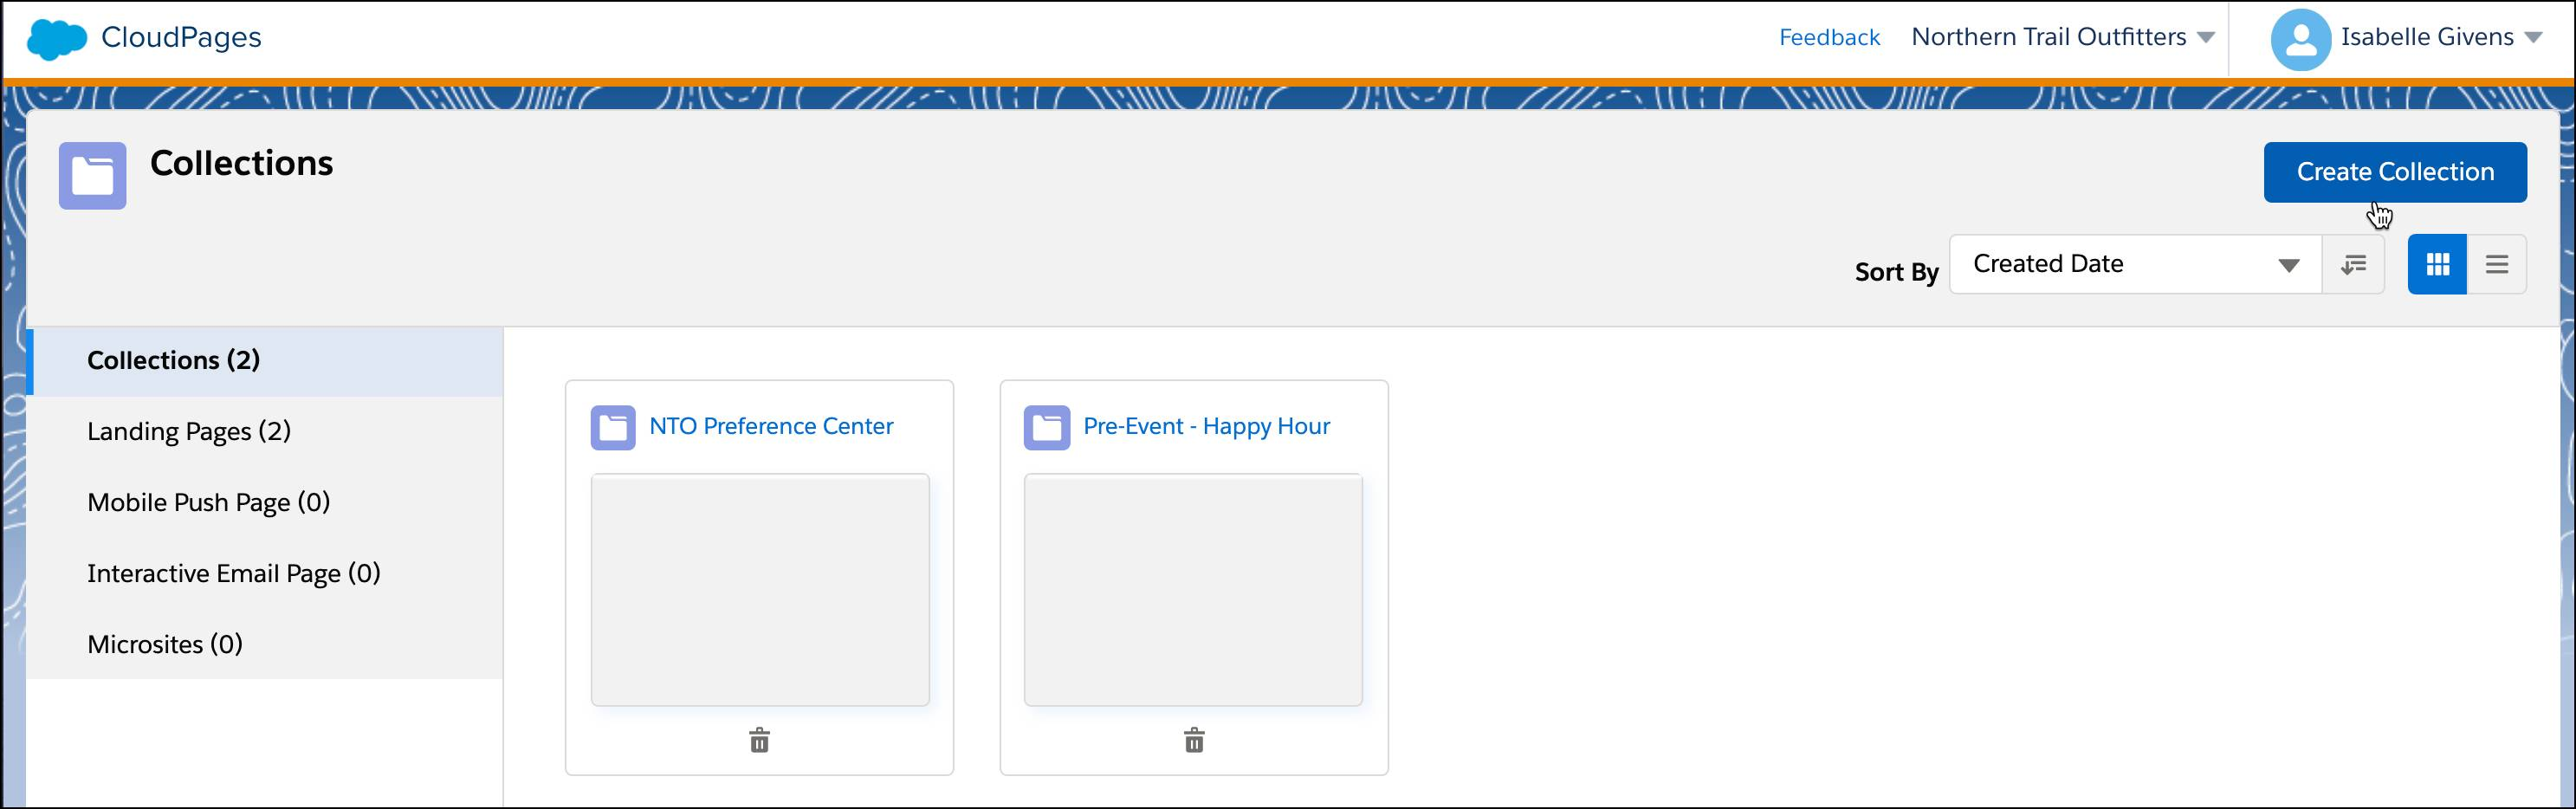 Create Collection button on the Overview page of CloudPages.